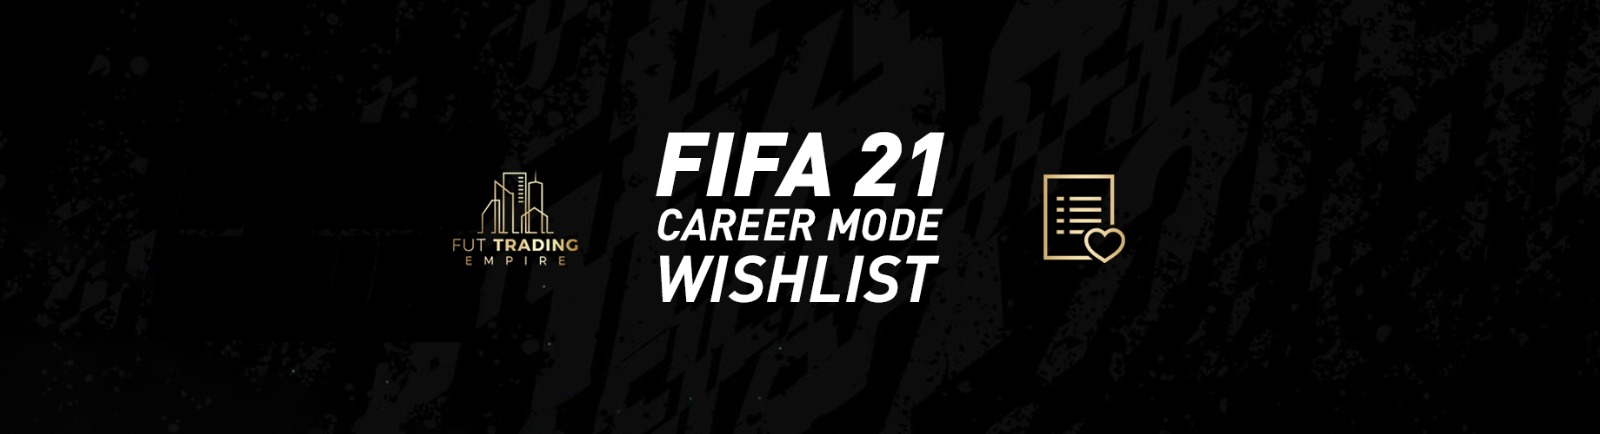 FIFA 21 Career Mode Wishlist